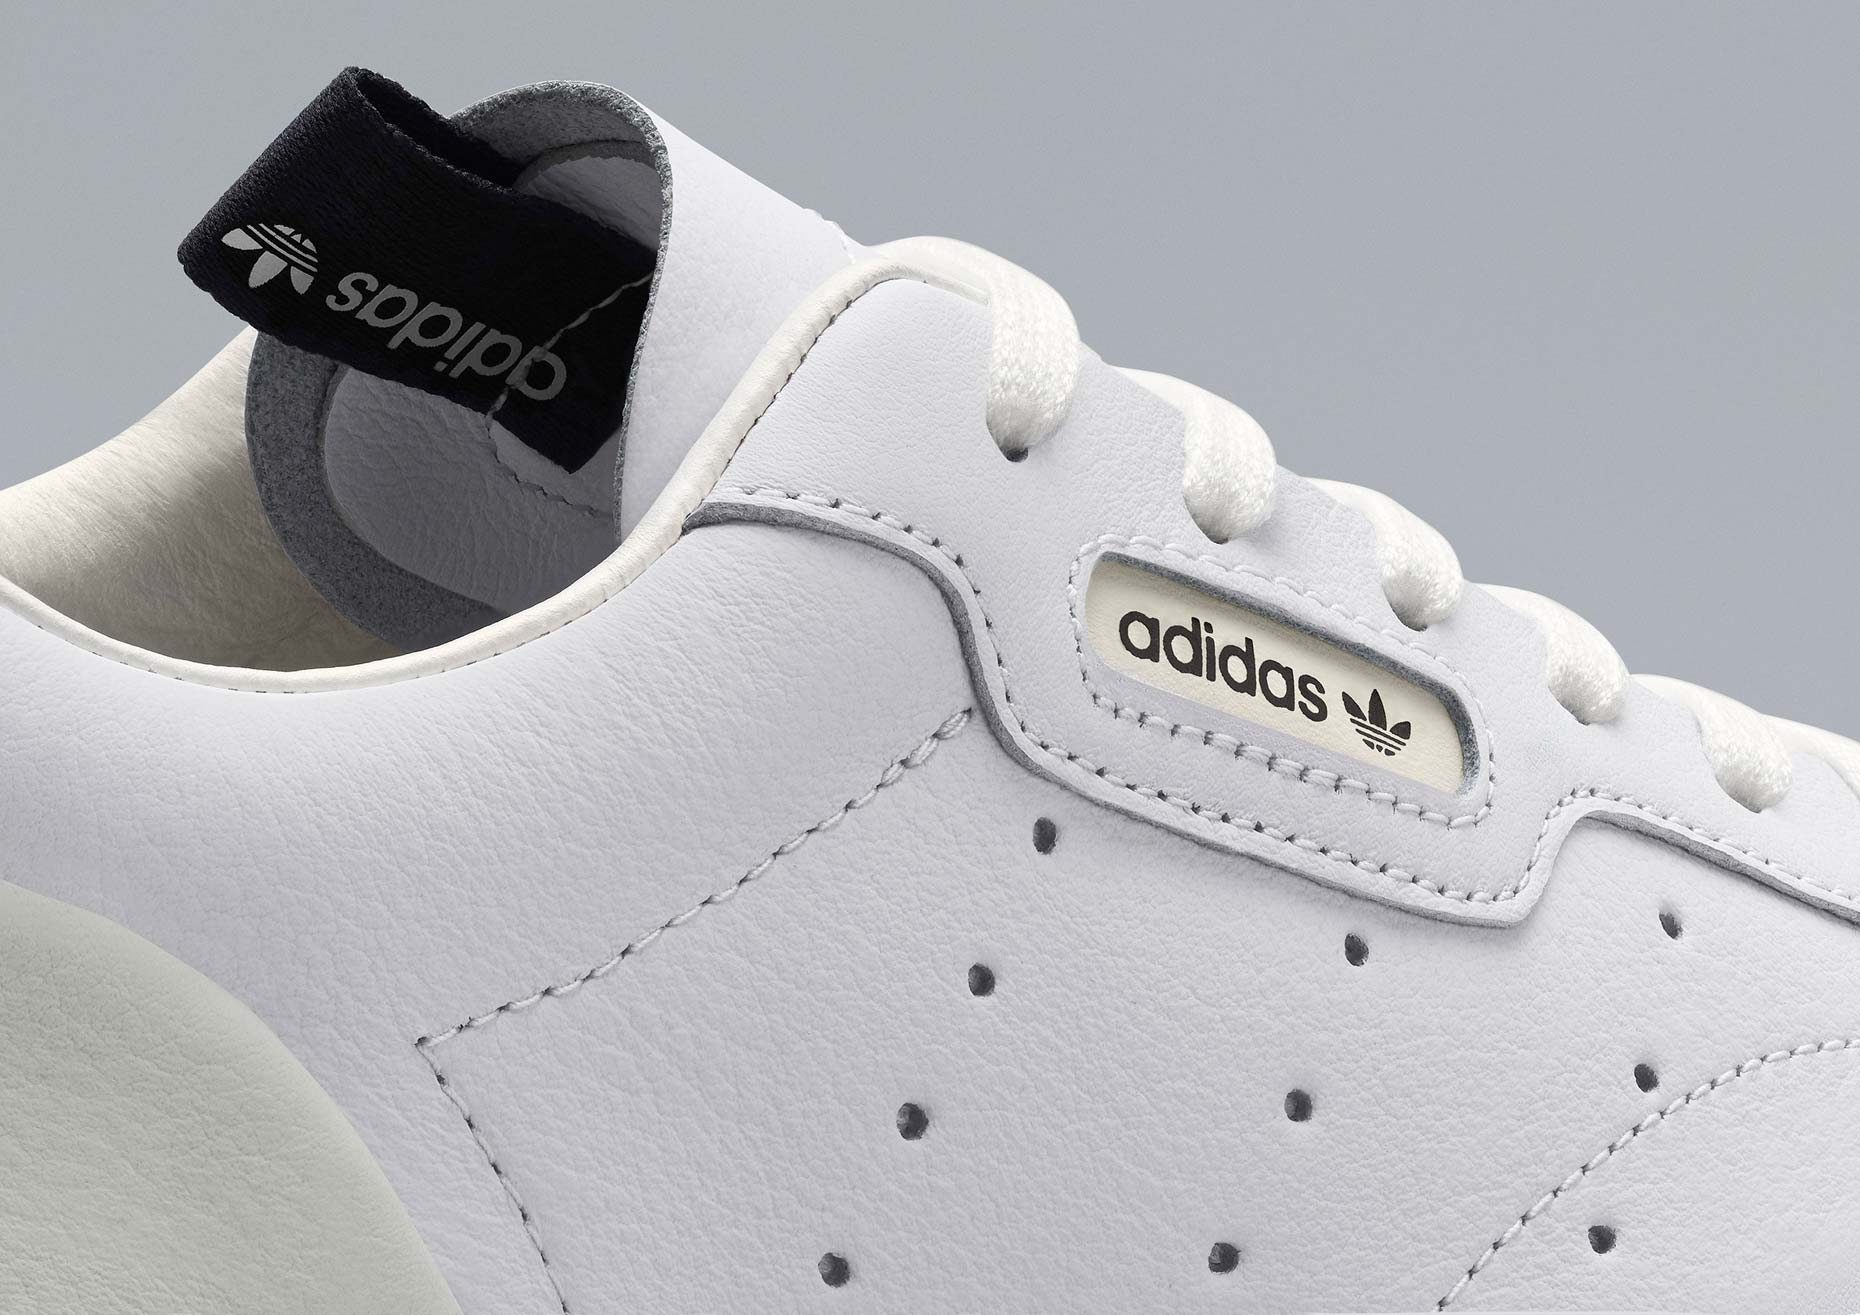 adidasOriginals_SS19_Sleek_SleekW_CG6199_03_Detail_COMP_c